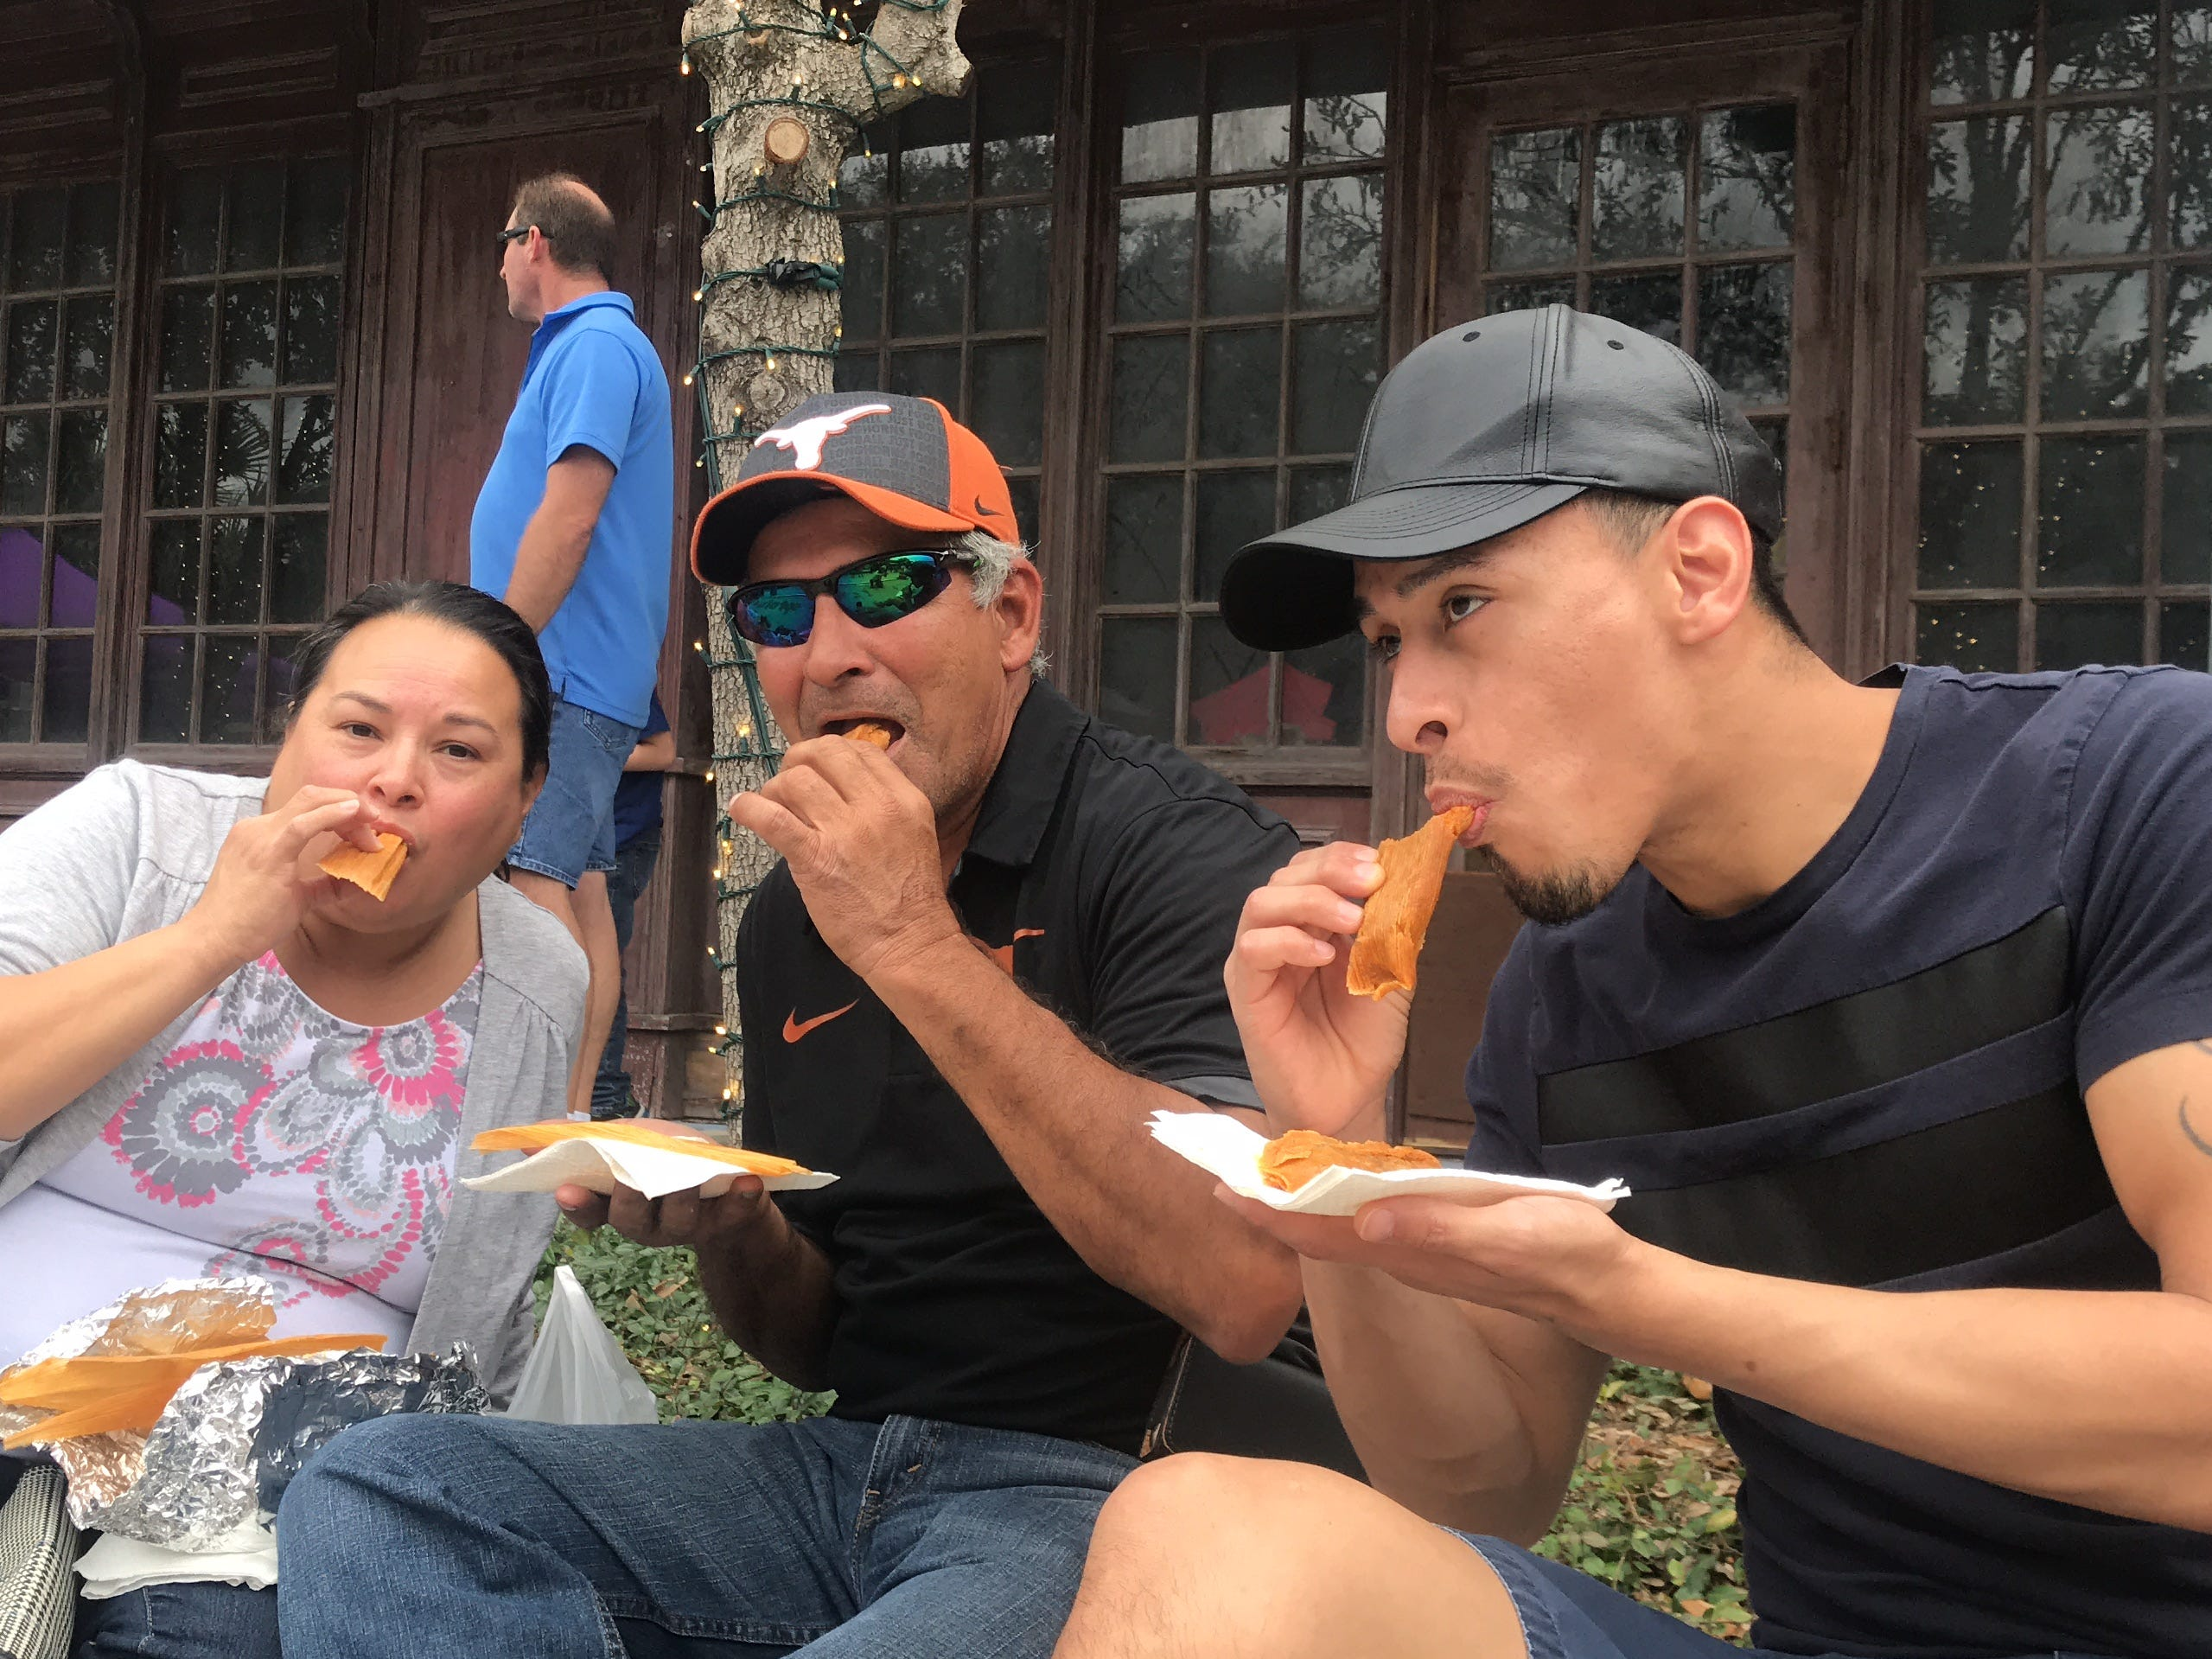 See why Corpus Christi loves eating tamales at the Hot Tamale Fest